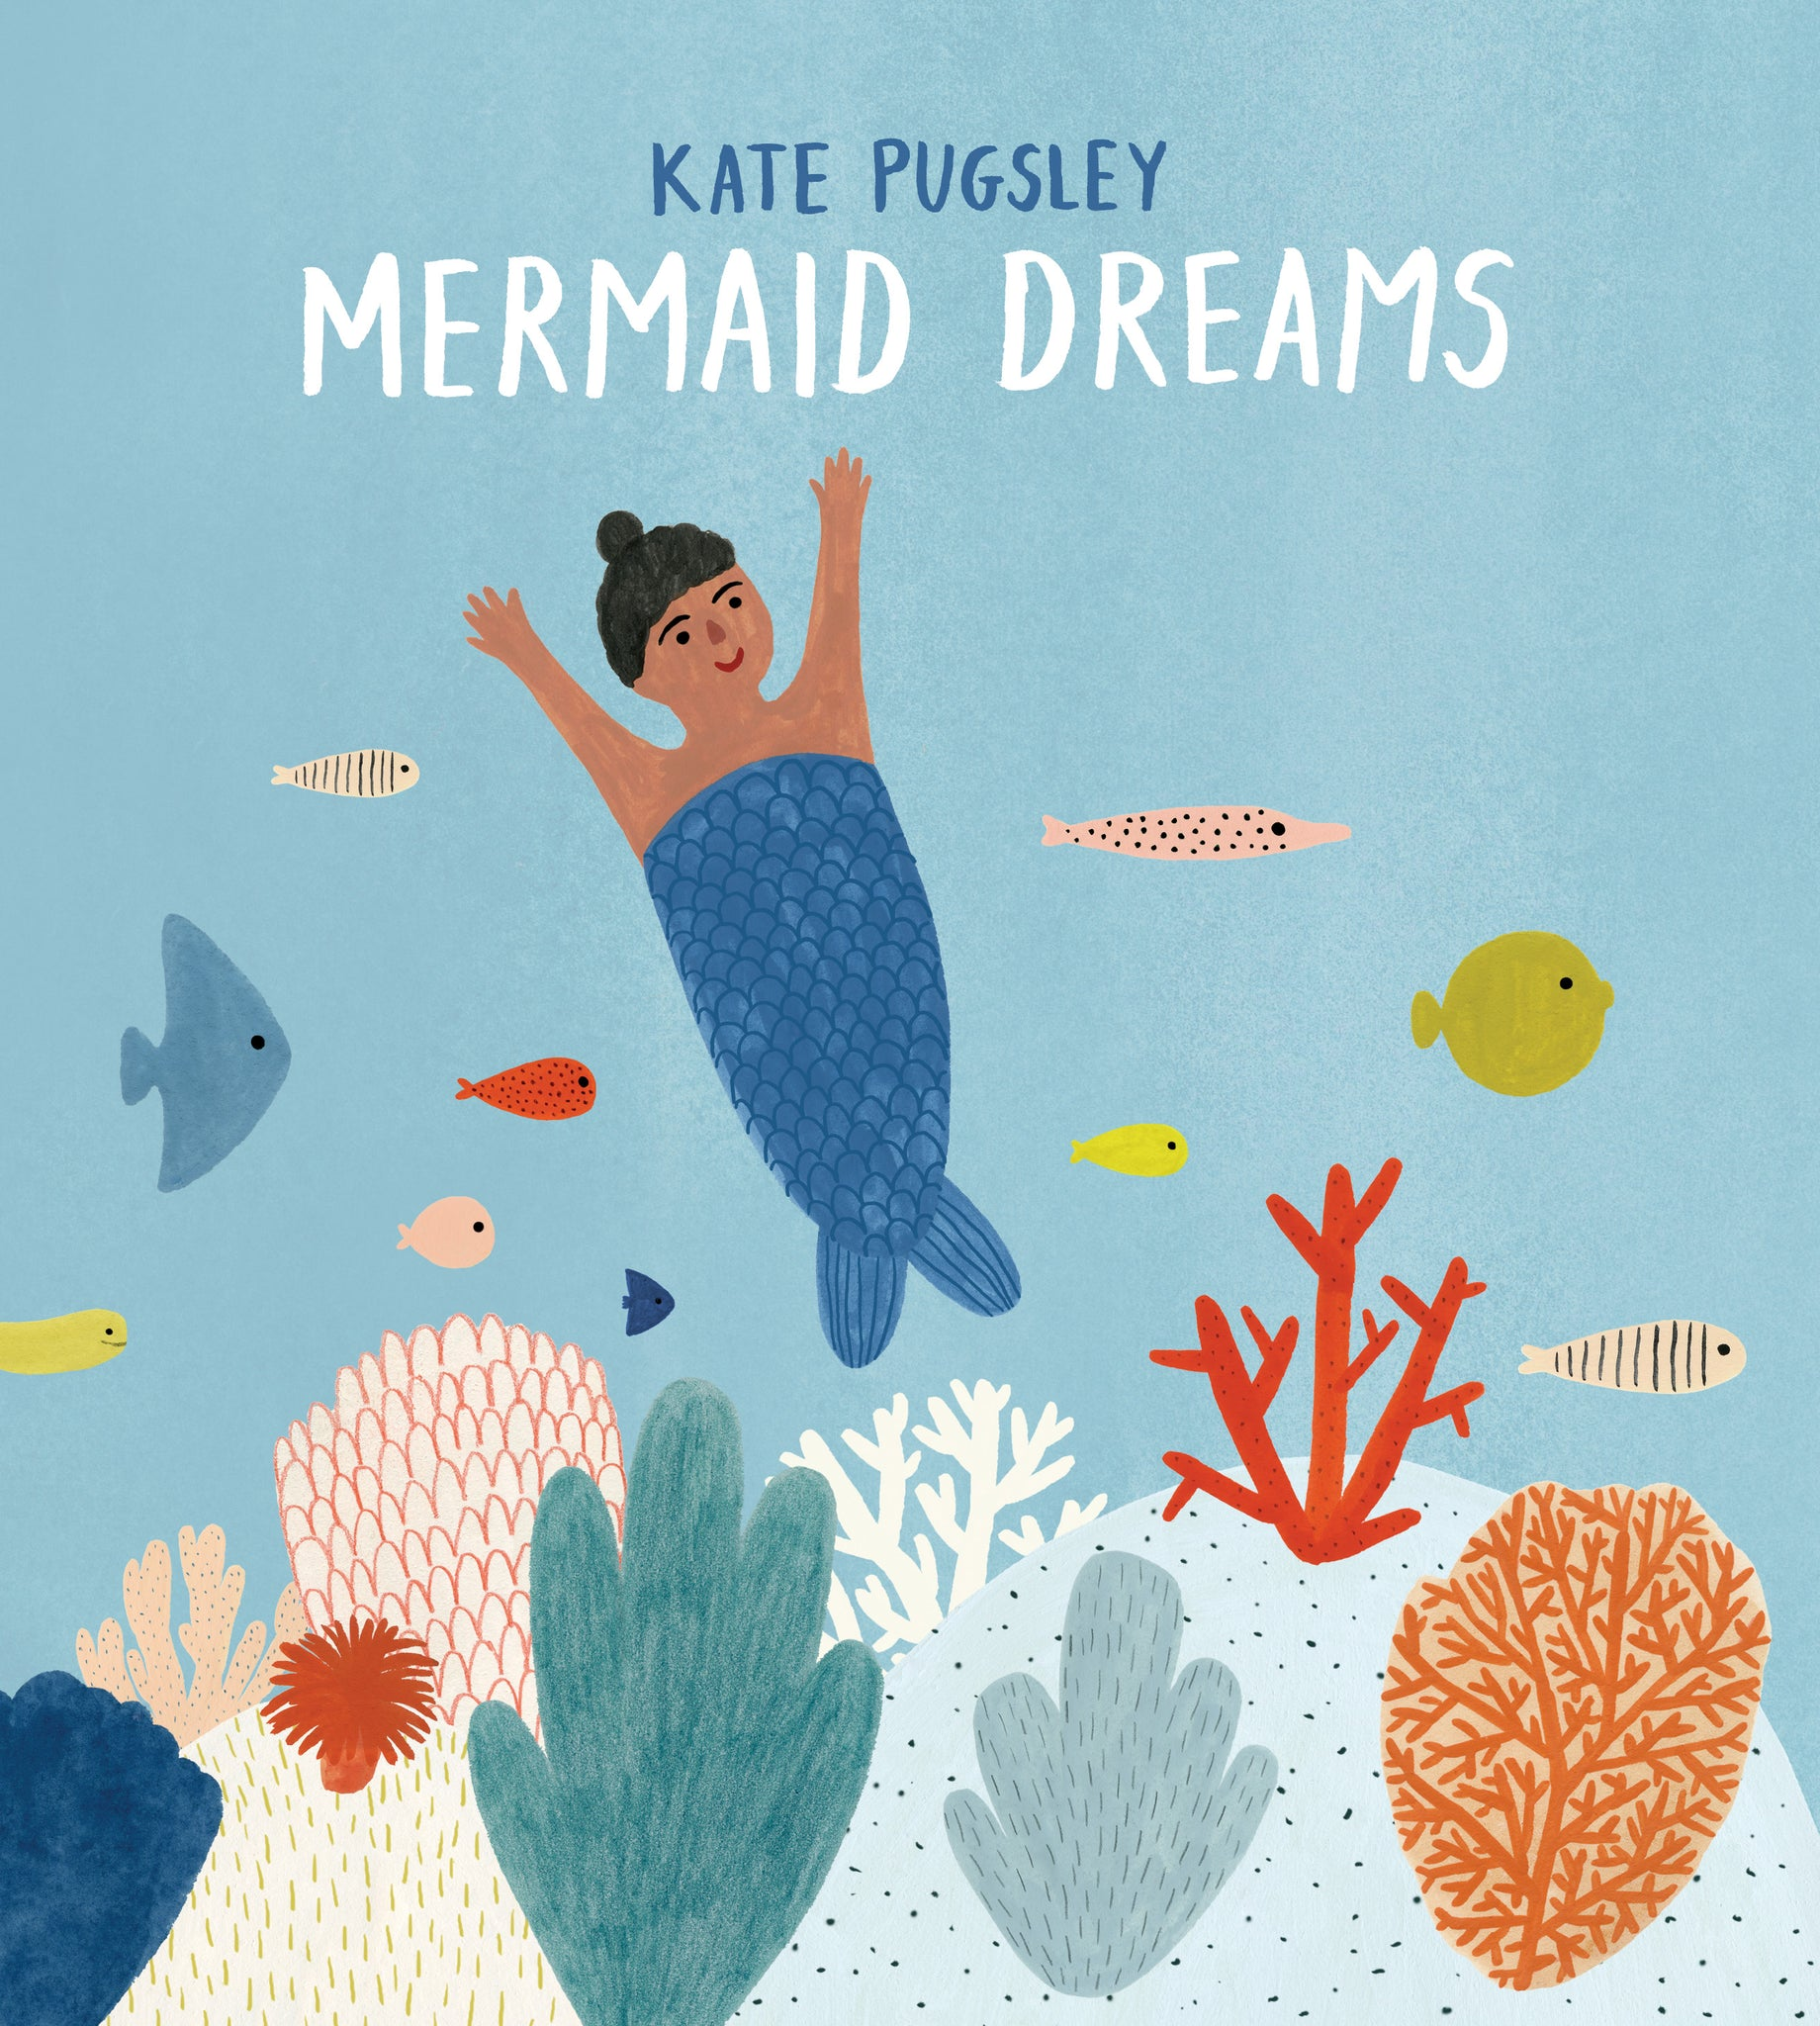 mermaid dreams